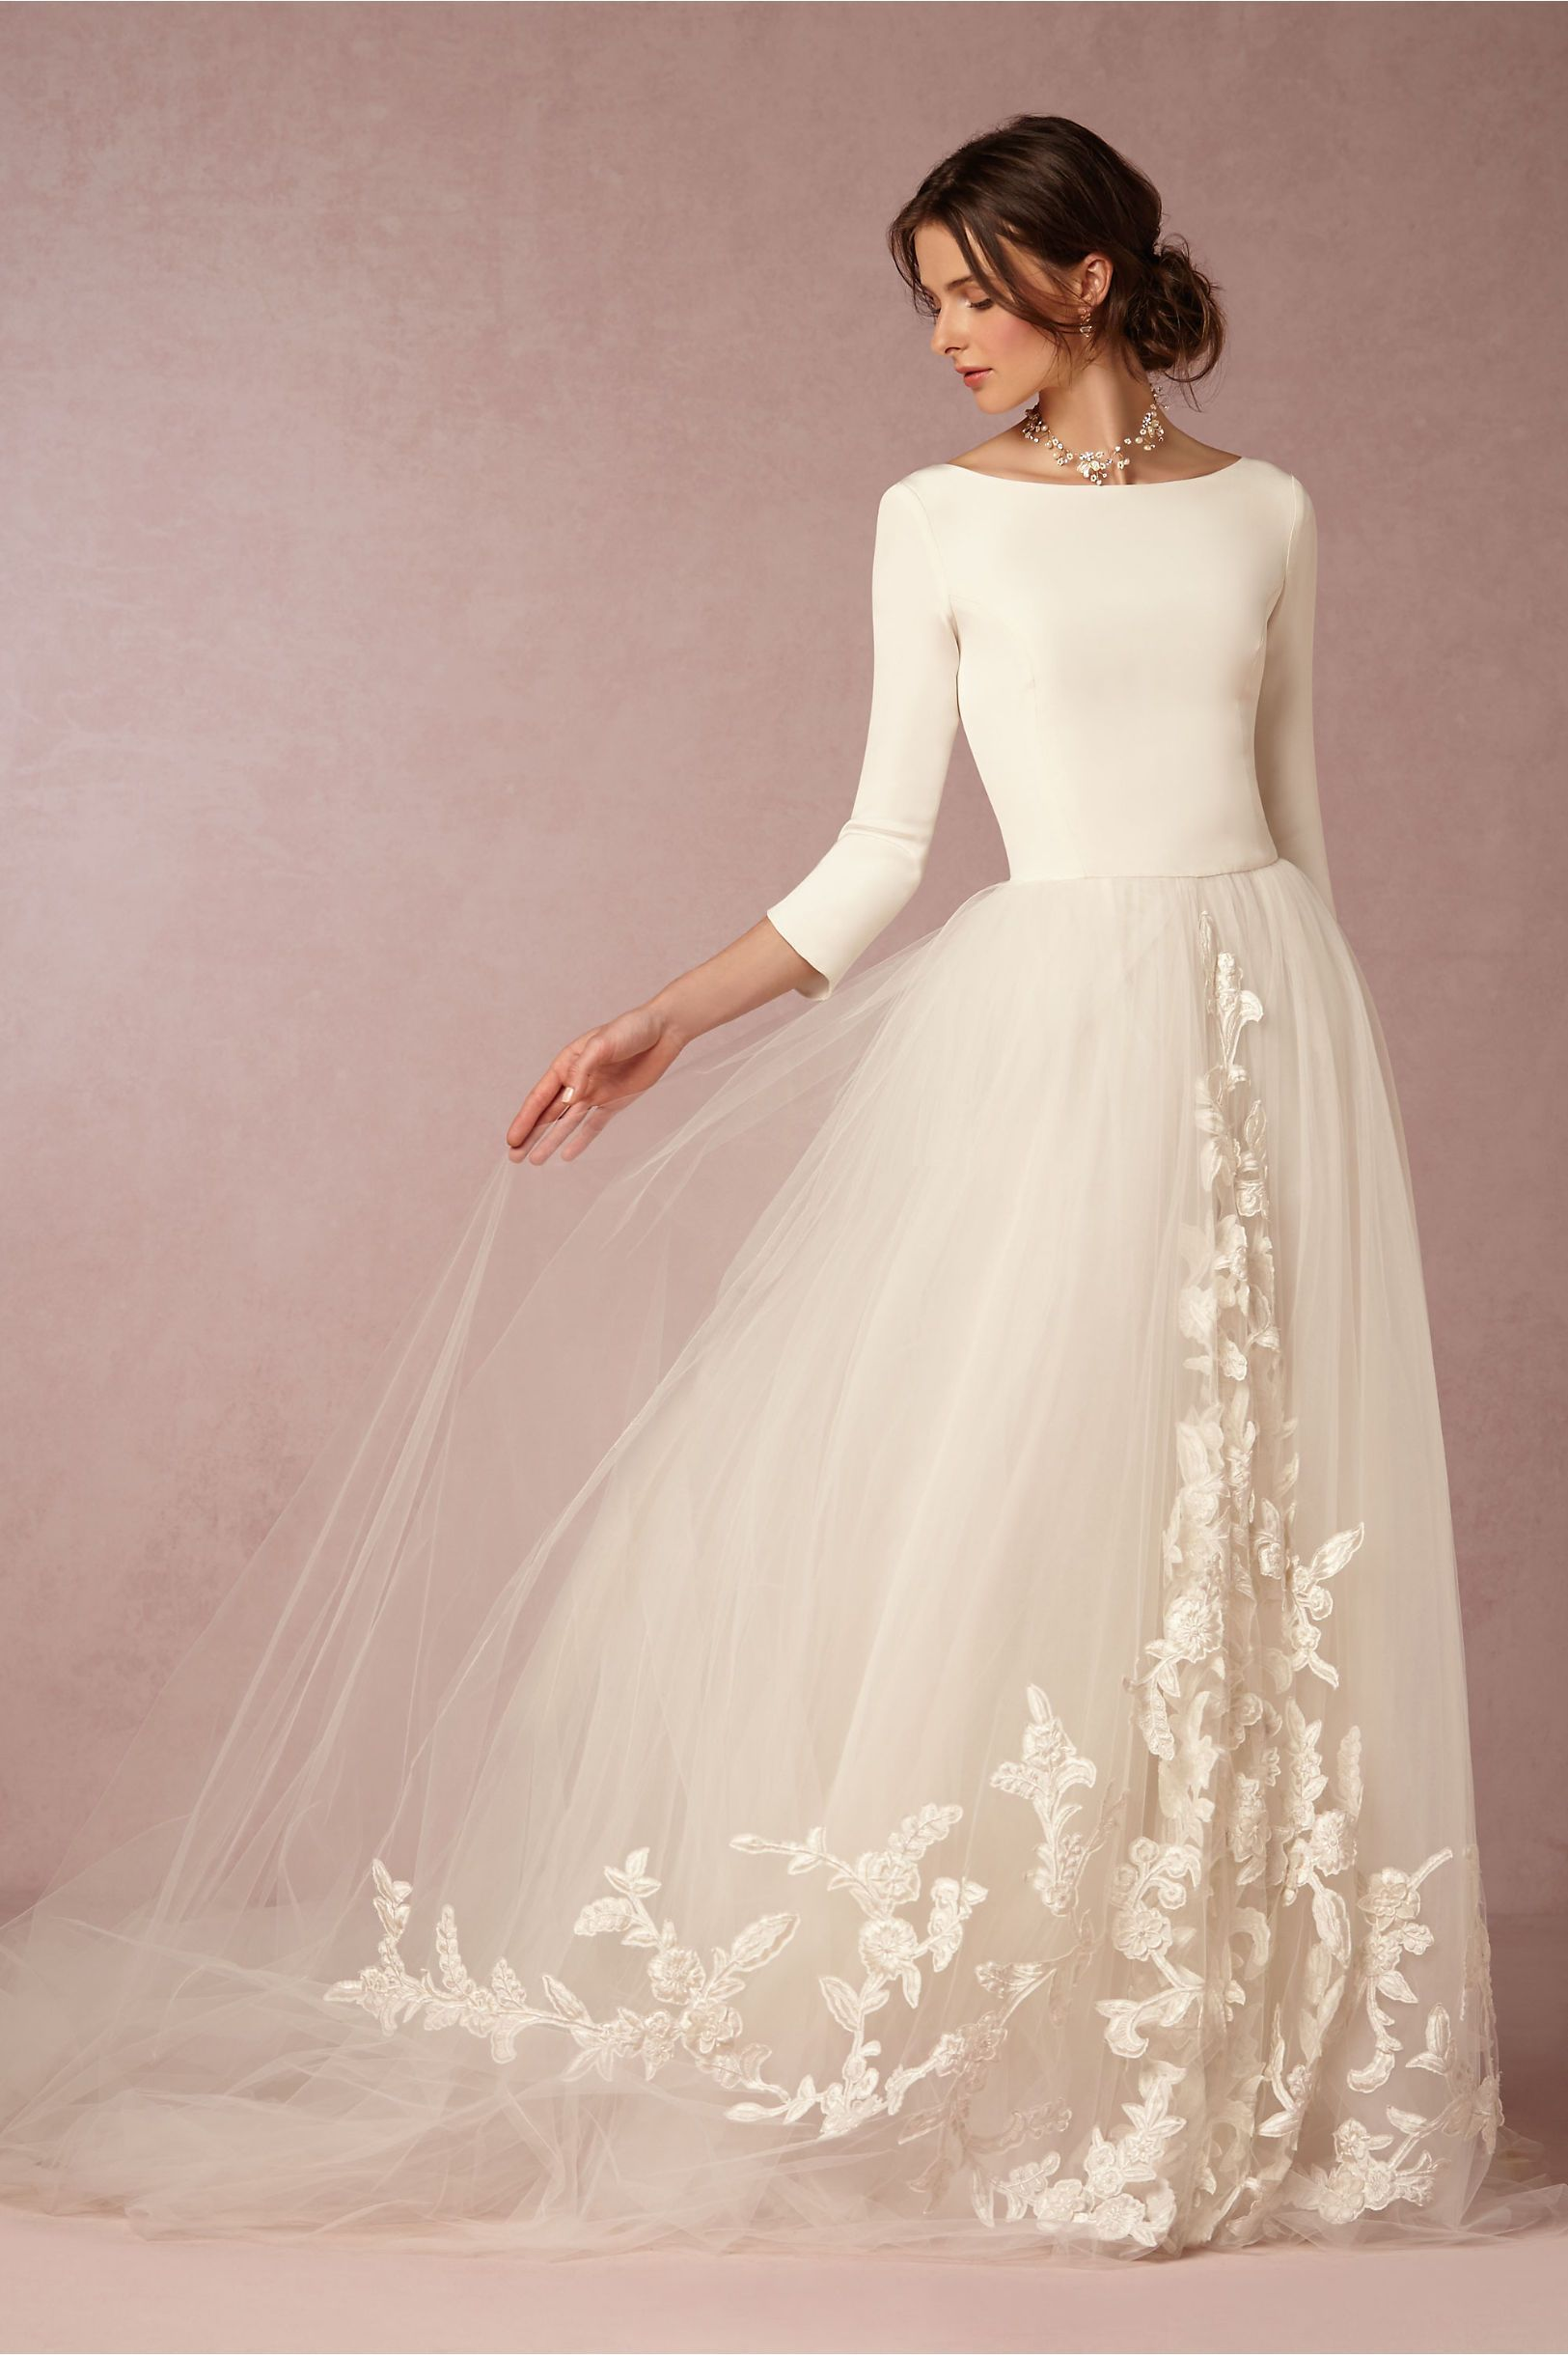 This is SO pretty! I would love a dress like this - simple, has lace ...